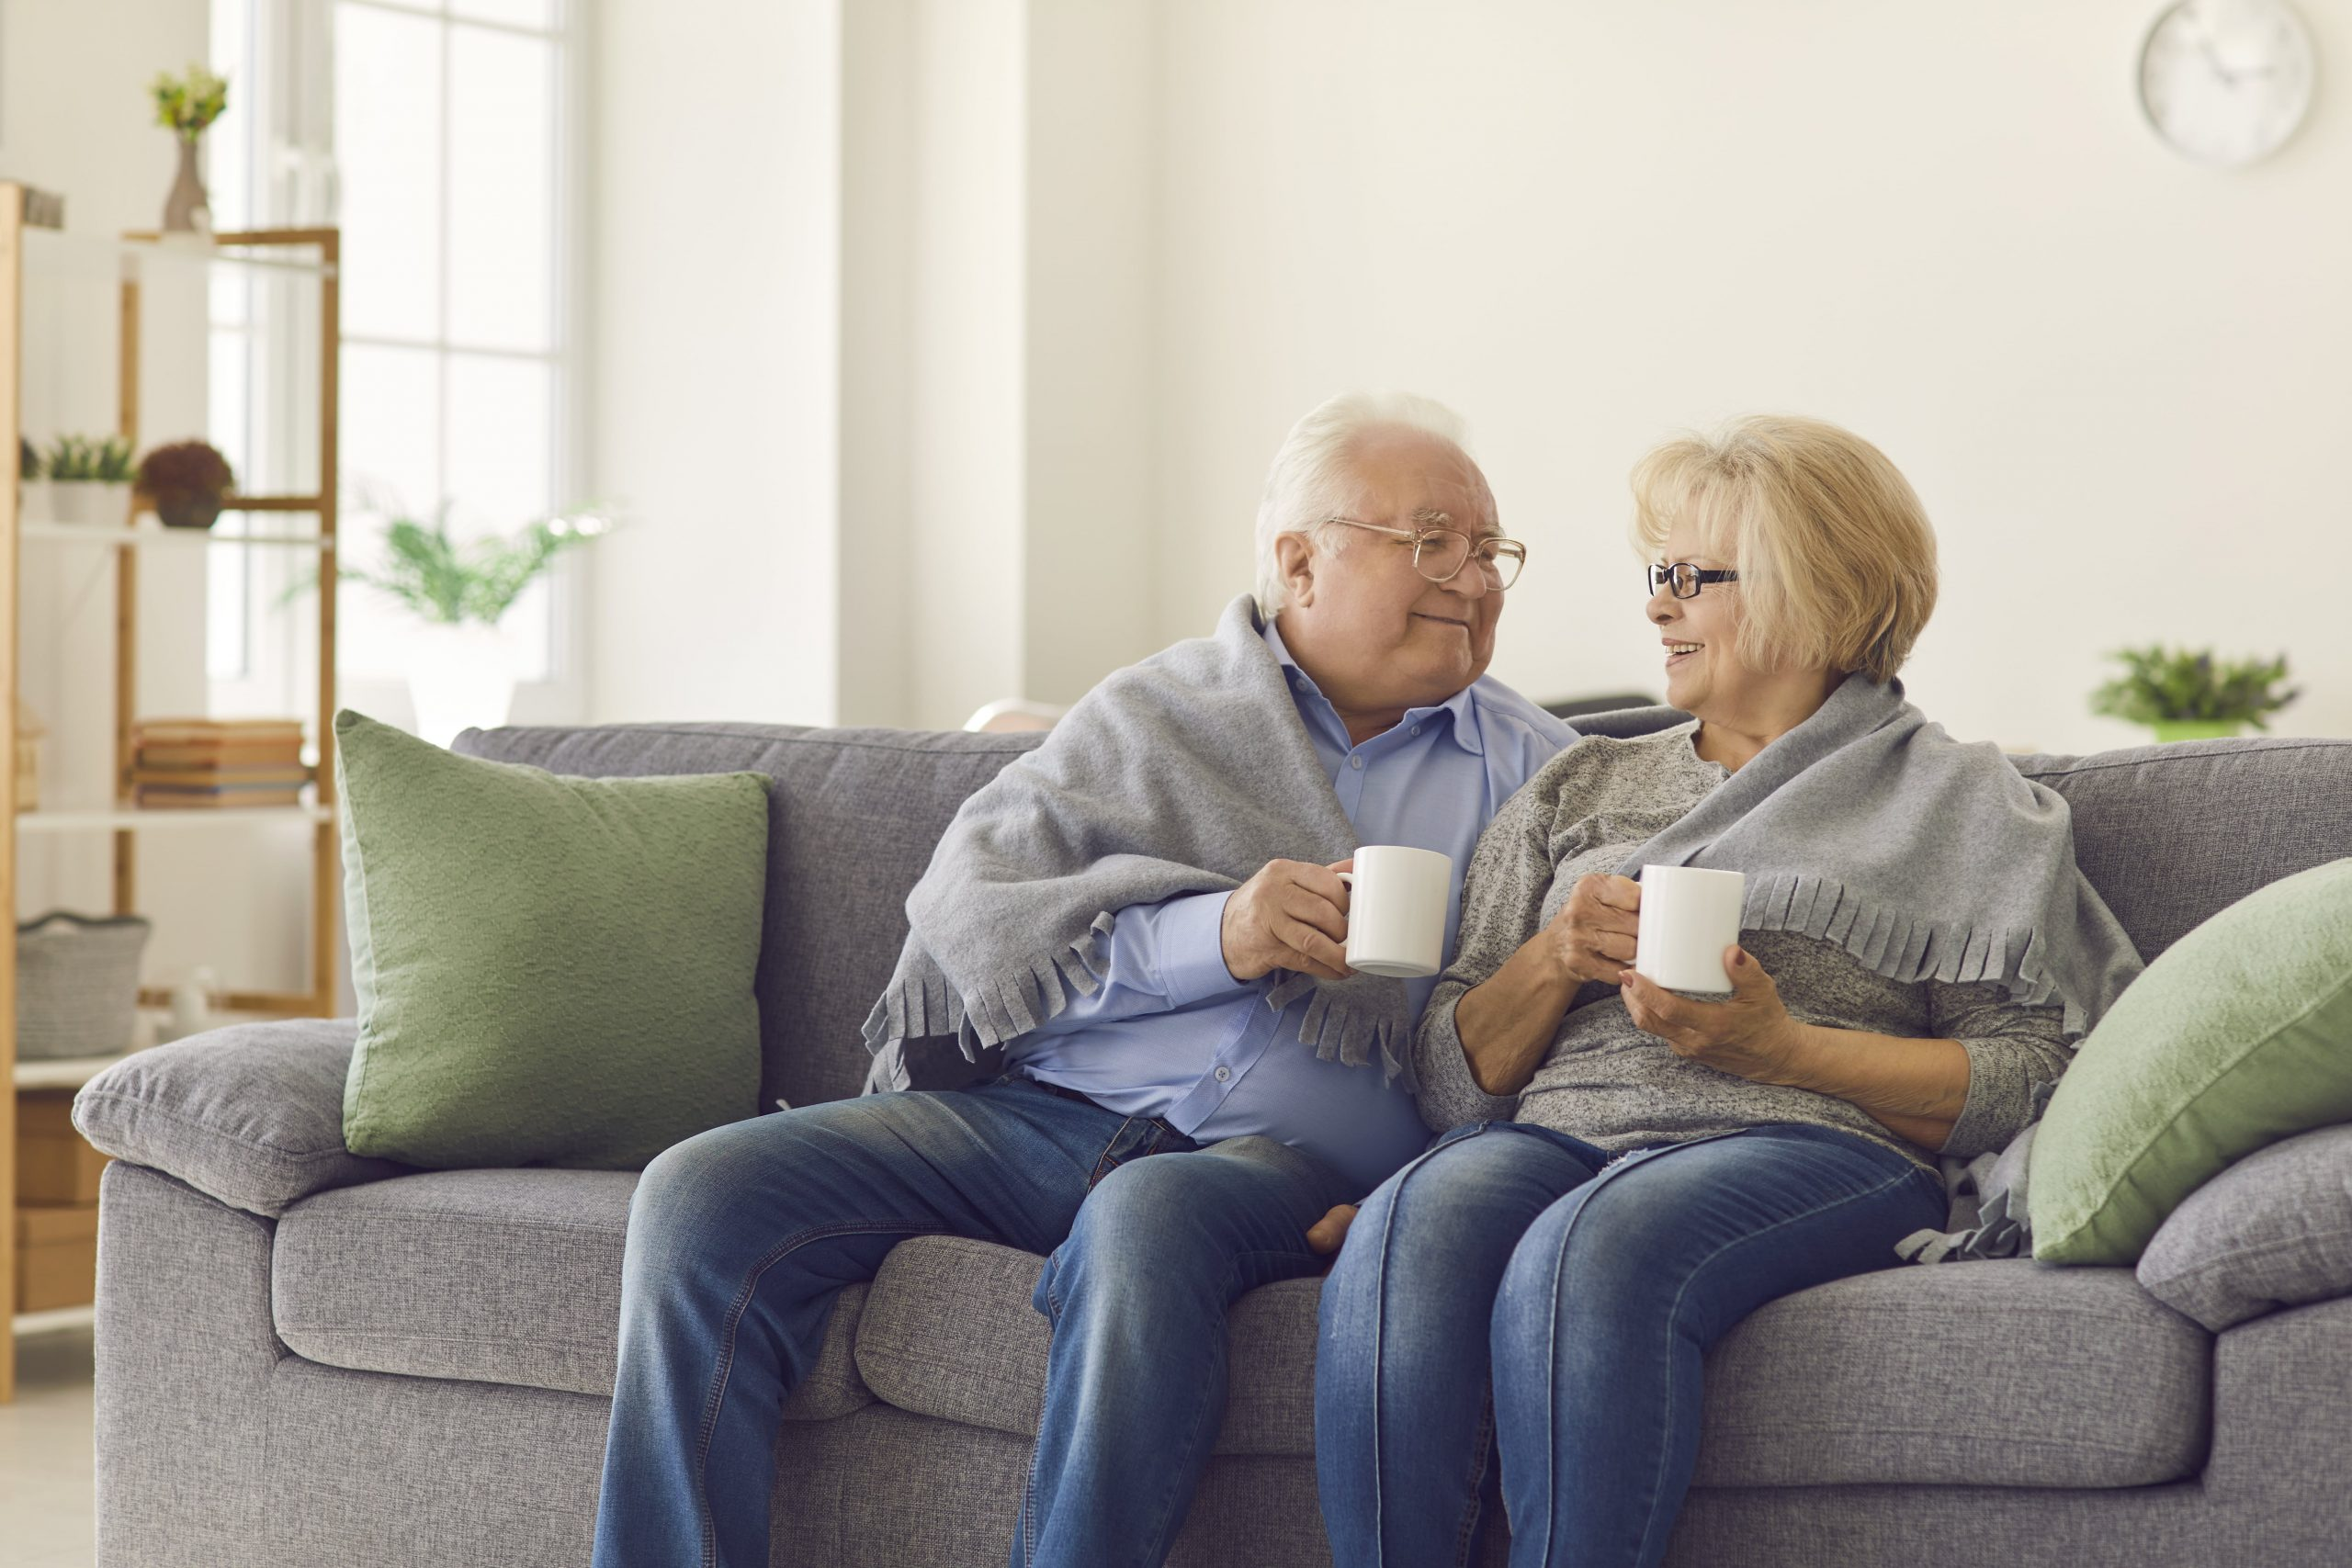 Medicare Supplement Insurance can help